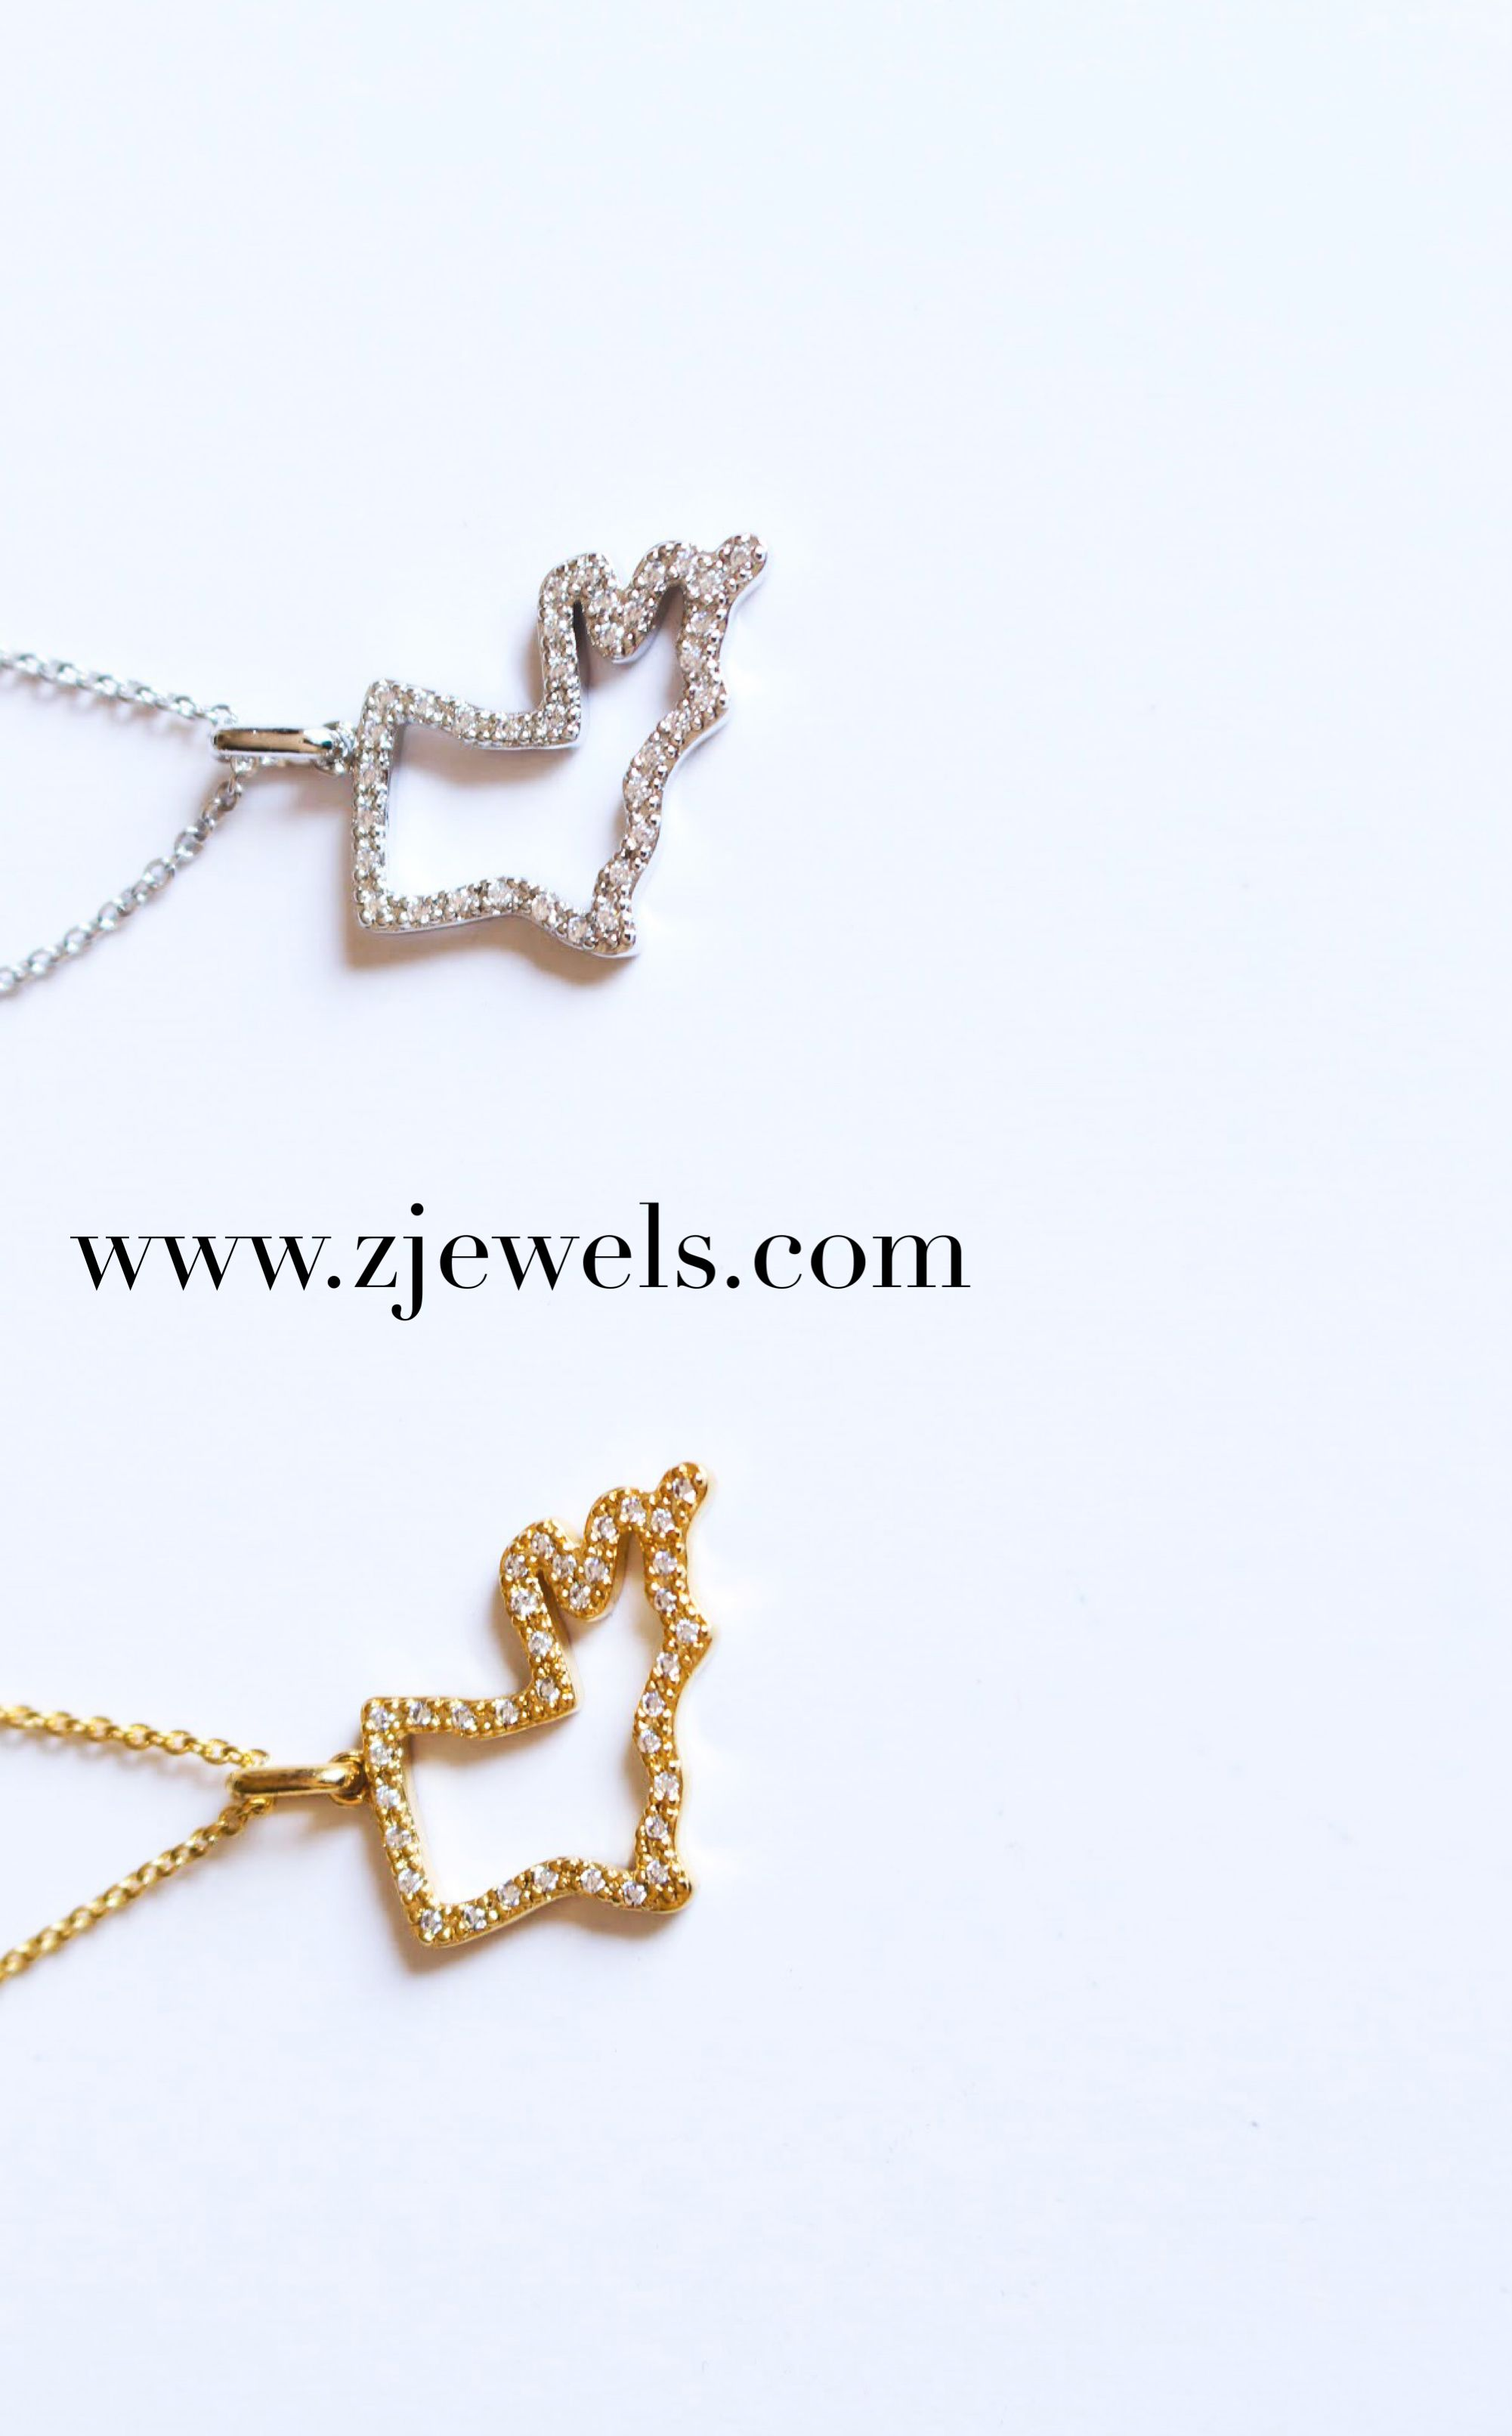 online necklaces for brands ecg women italy prices womens kingdom shop silver necklace sale genuine